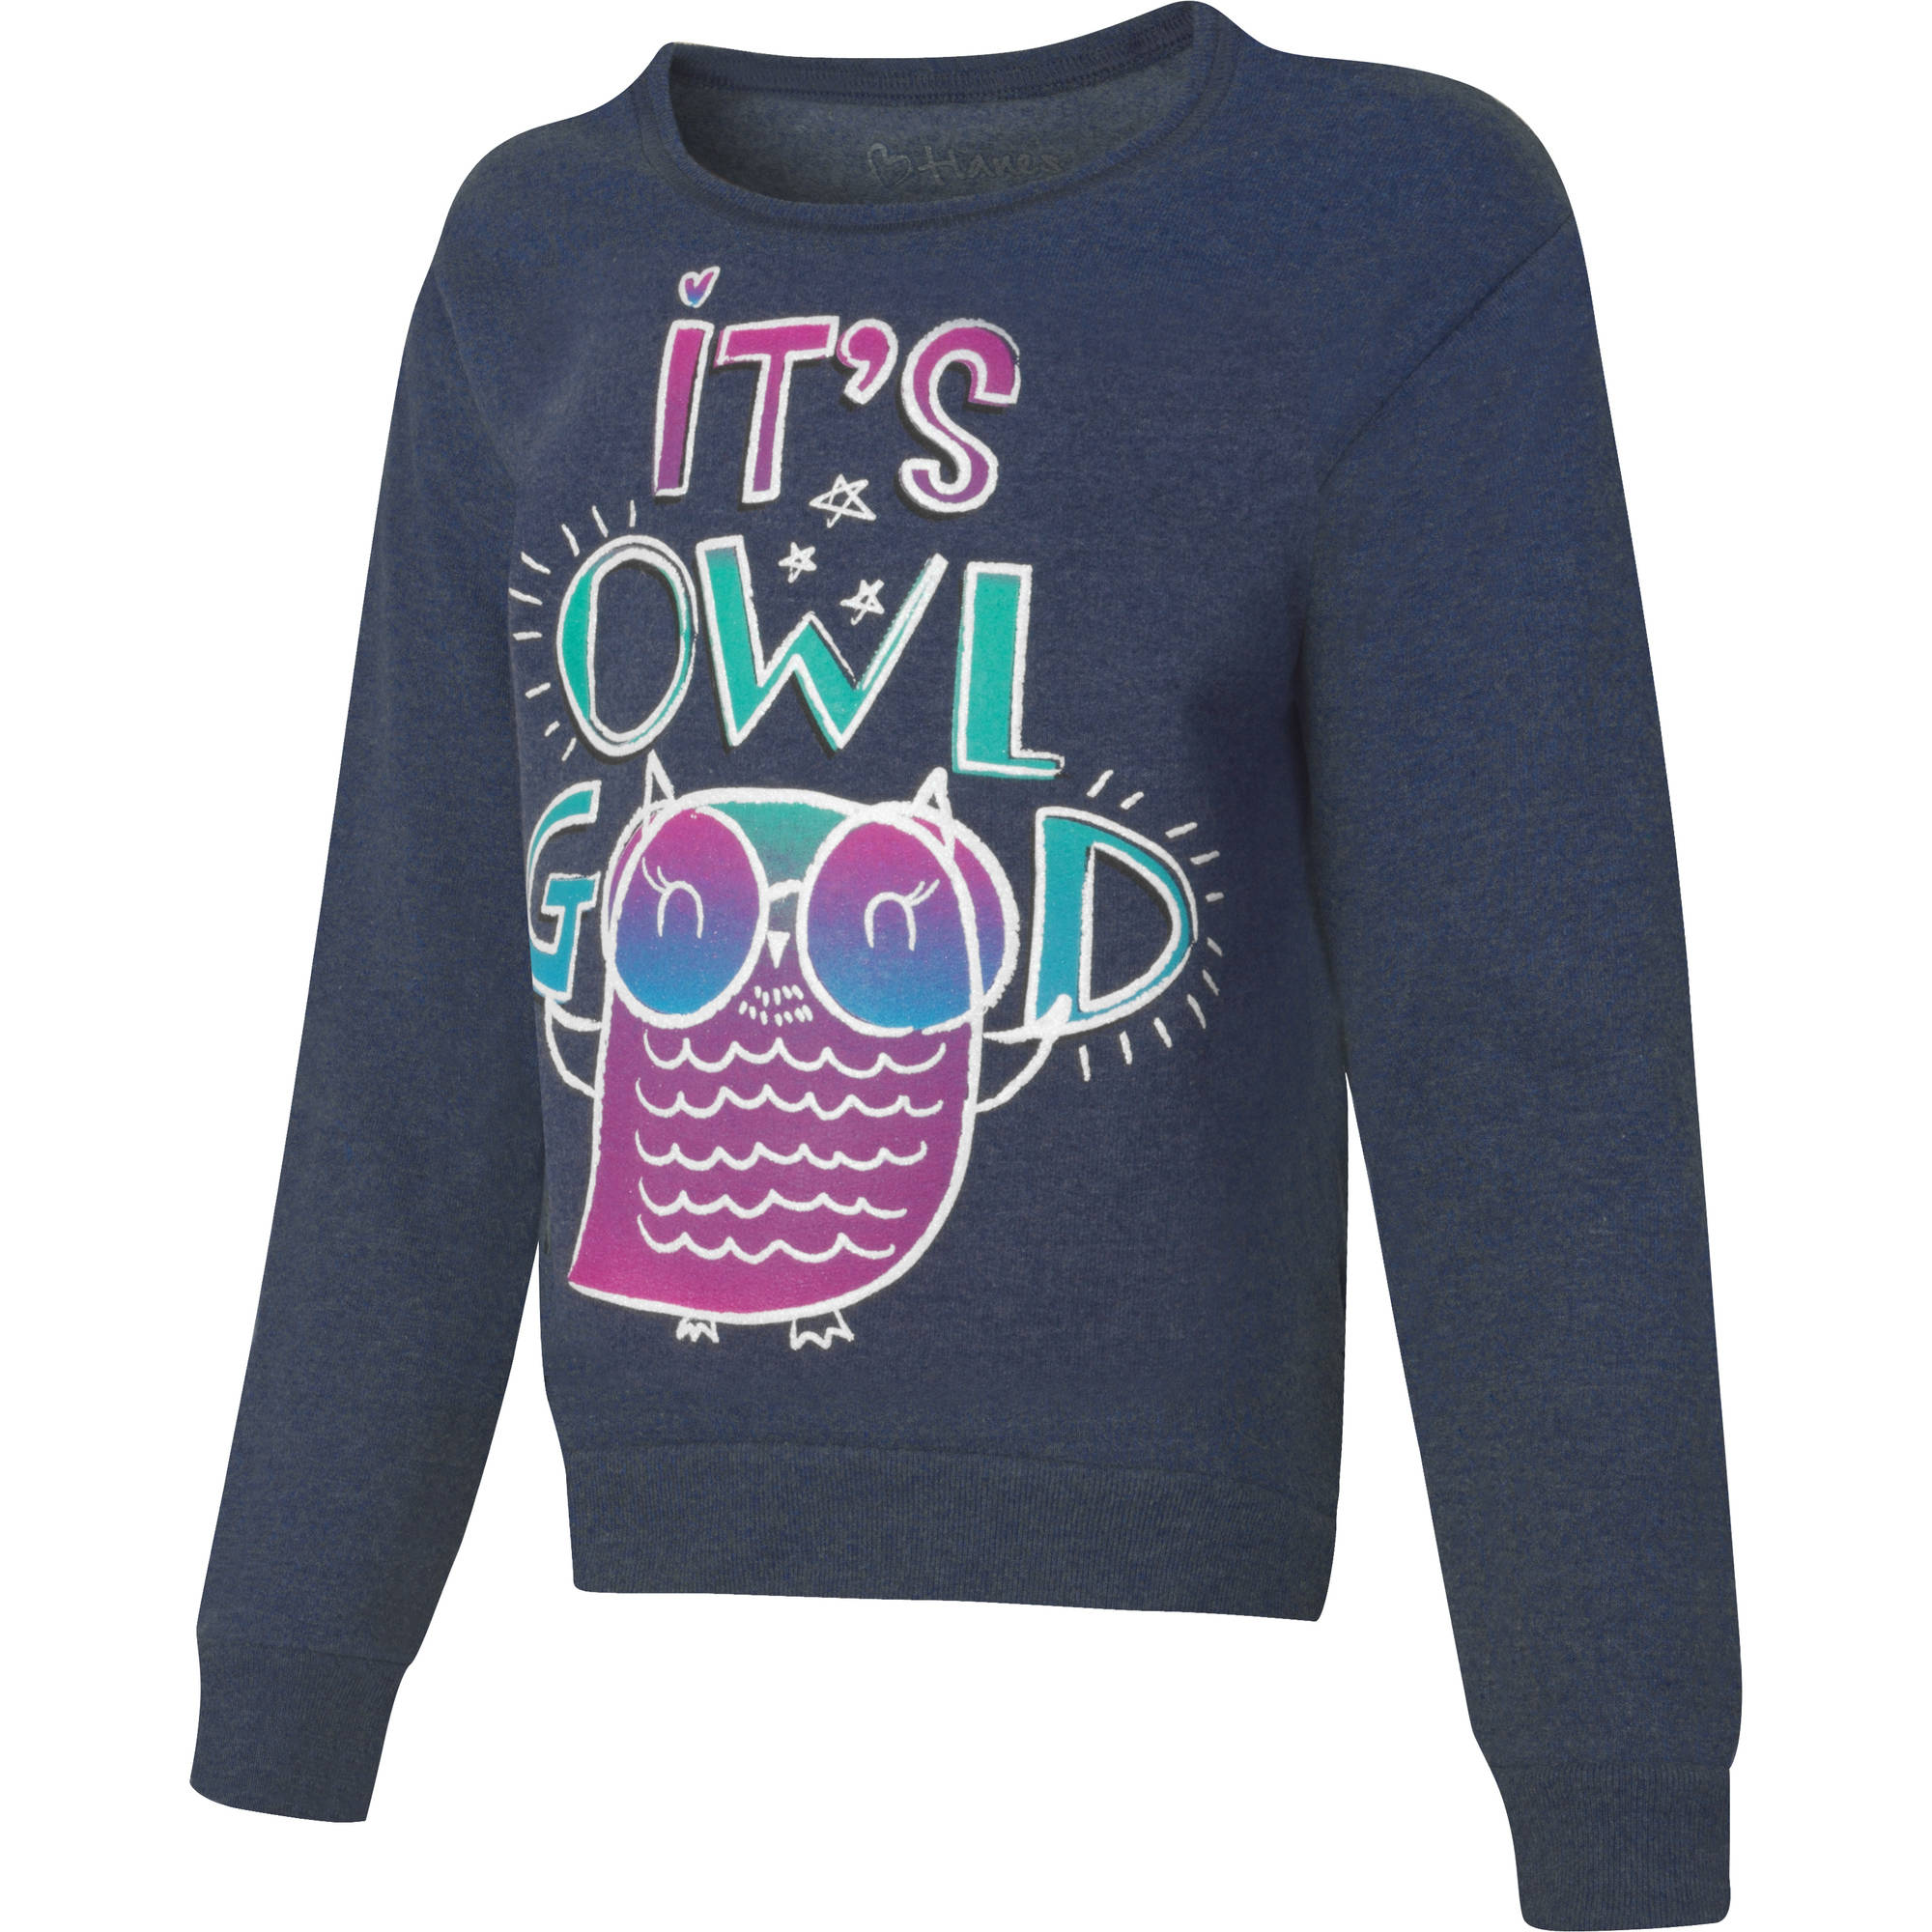 Hanes Girls' Printed Fleece Sweatshirt